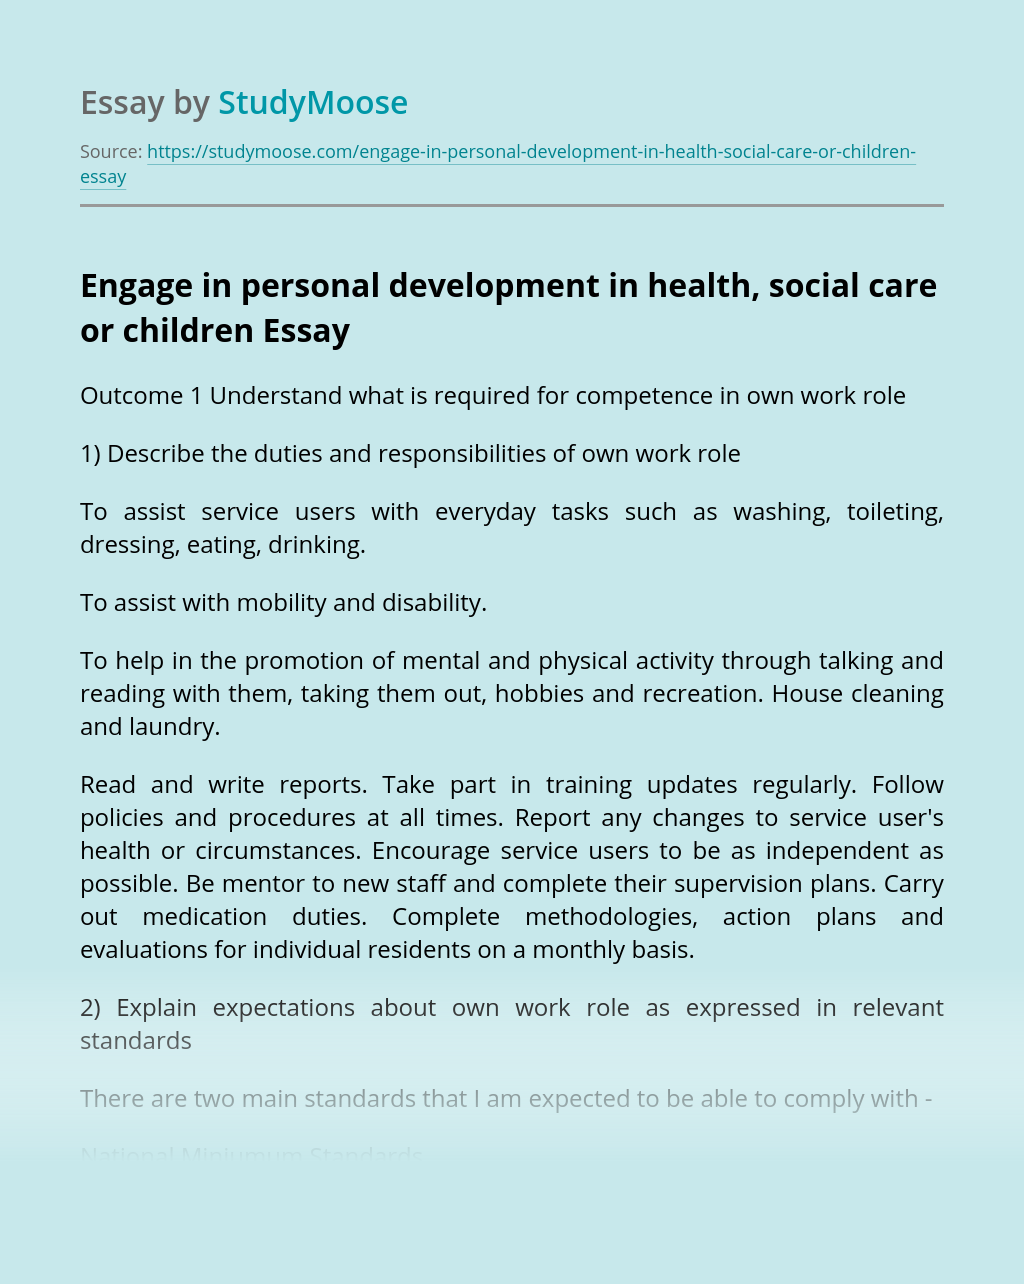 Engage in personal development in health, social care or children